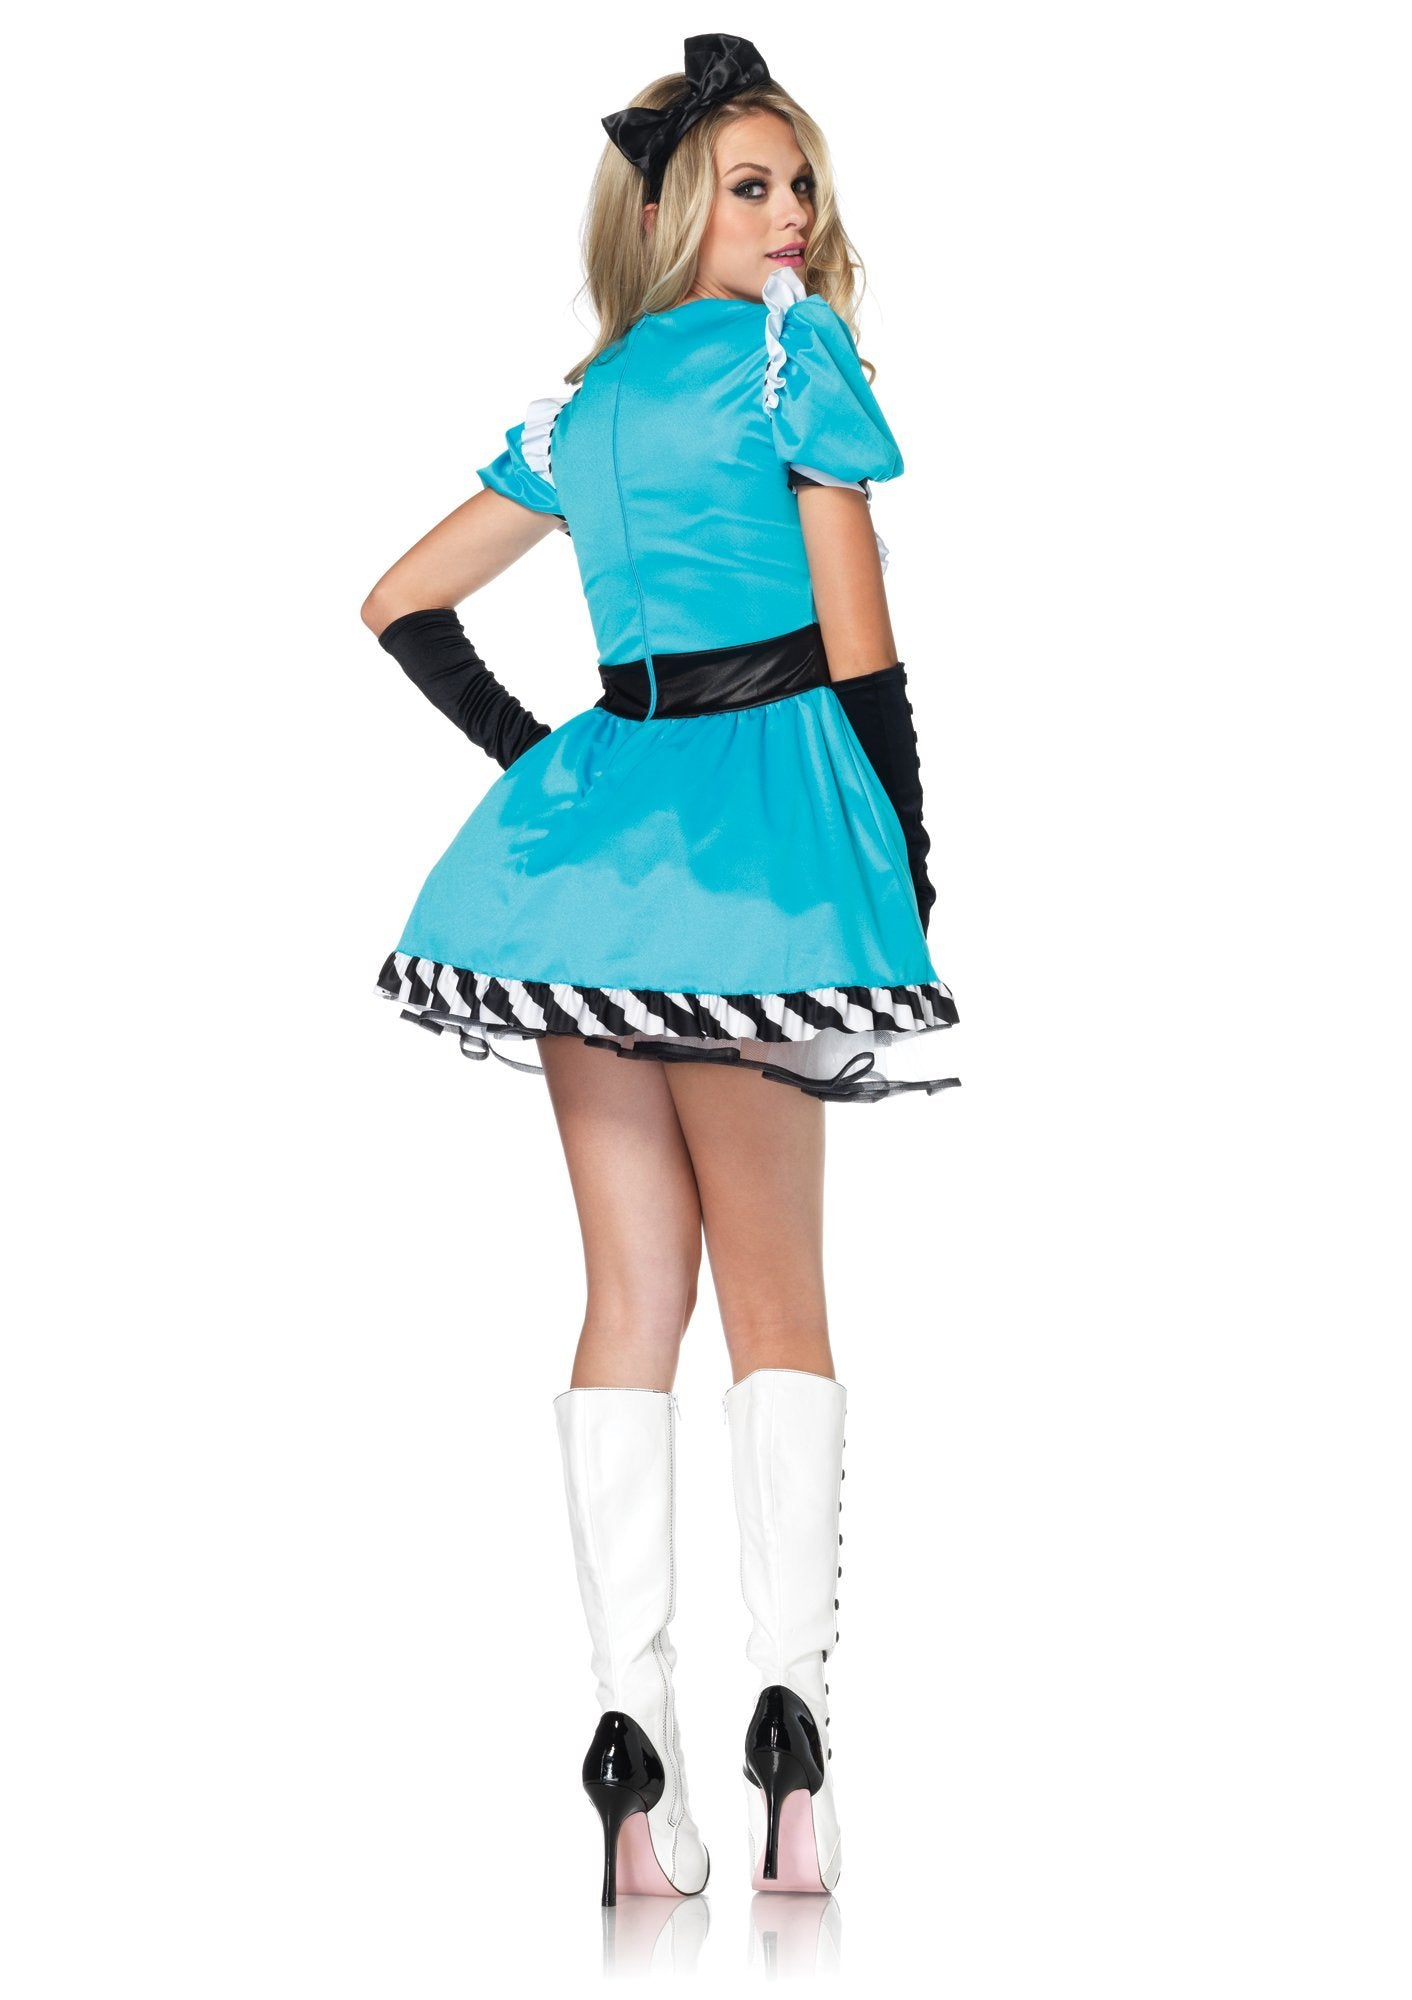 Leg Avenue Costumes Adult Charming Alice Costume